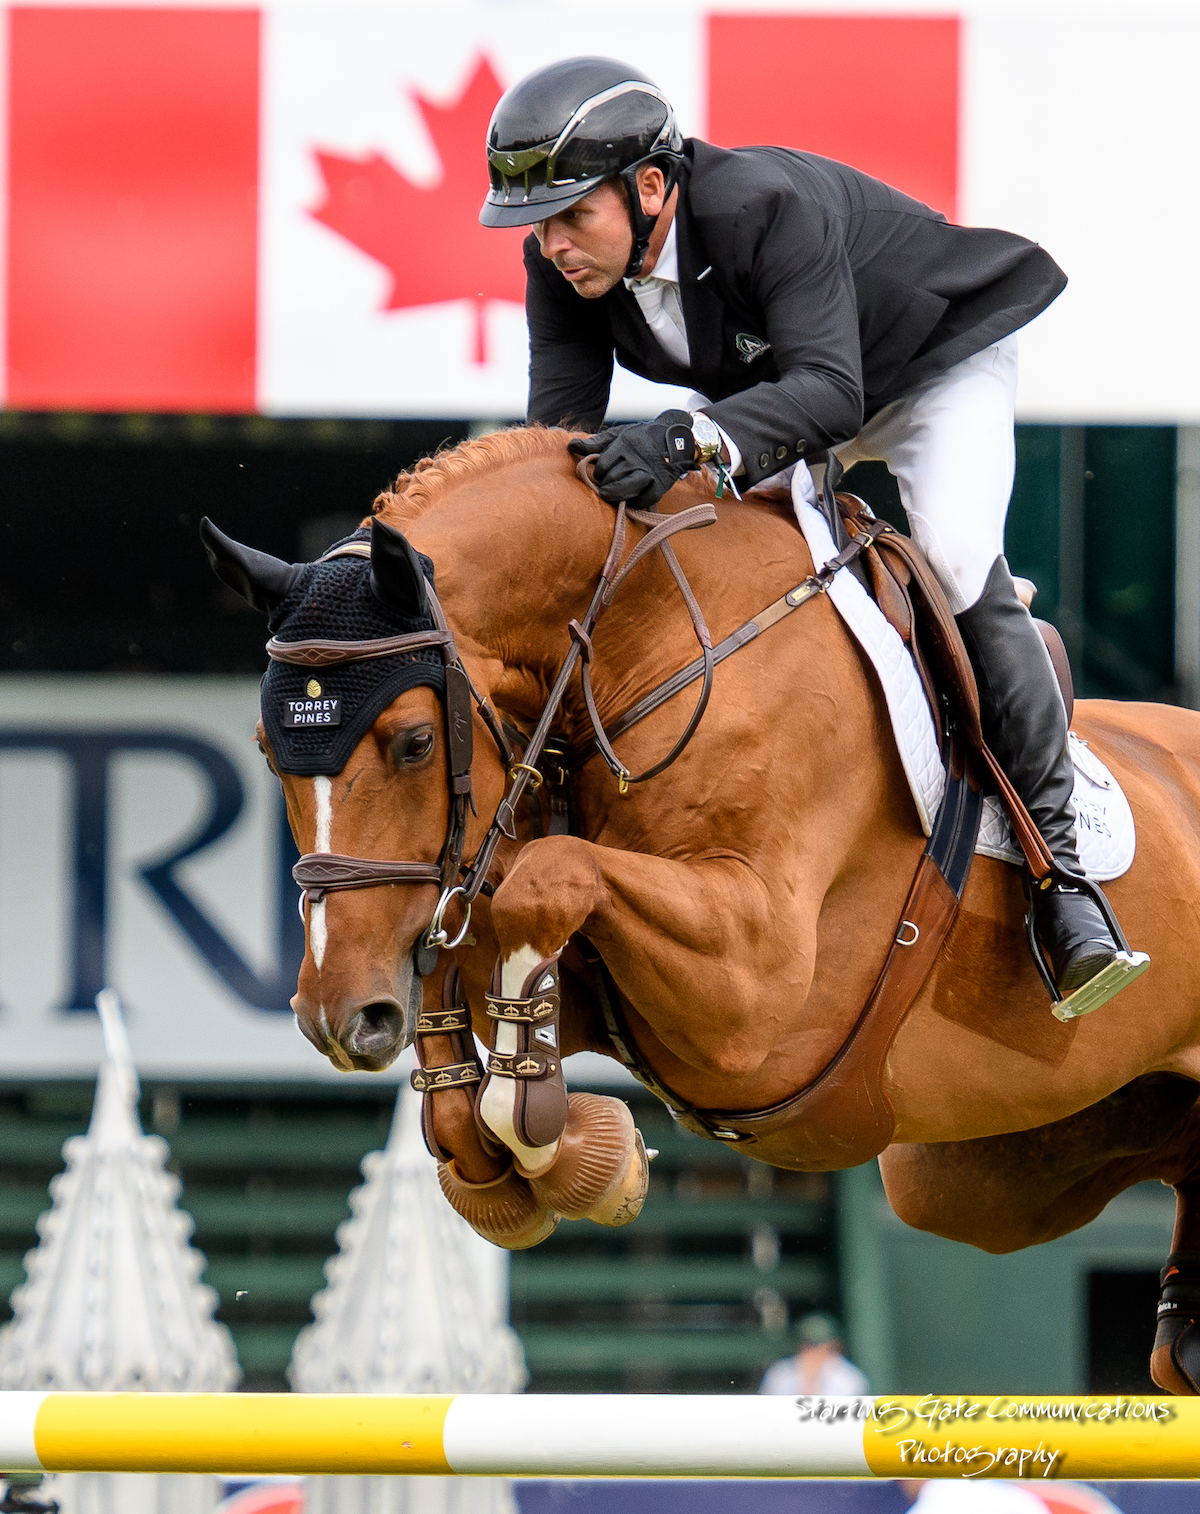 News   Torrey Pines Stable   Home of Olympic Champion Eric